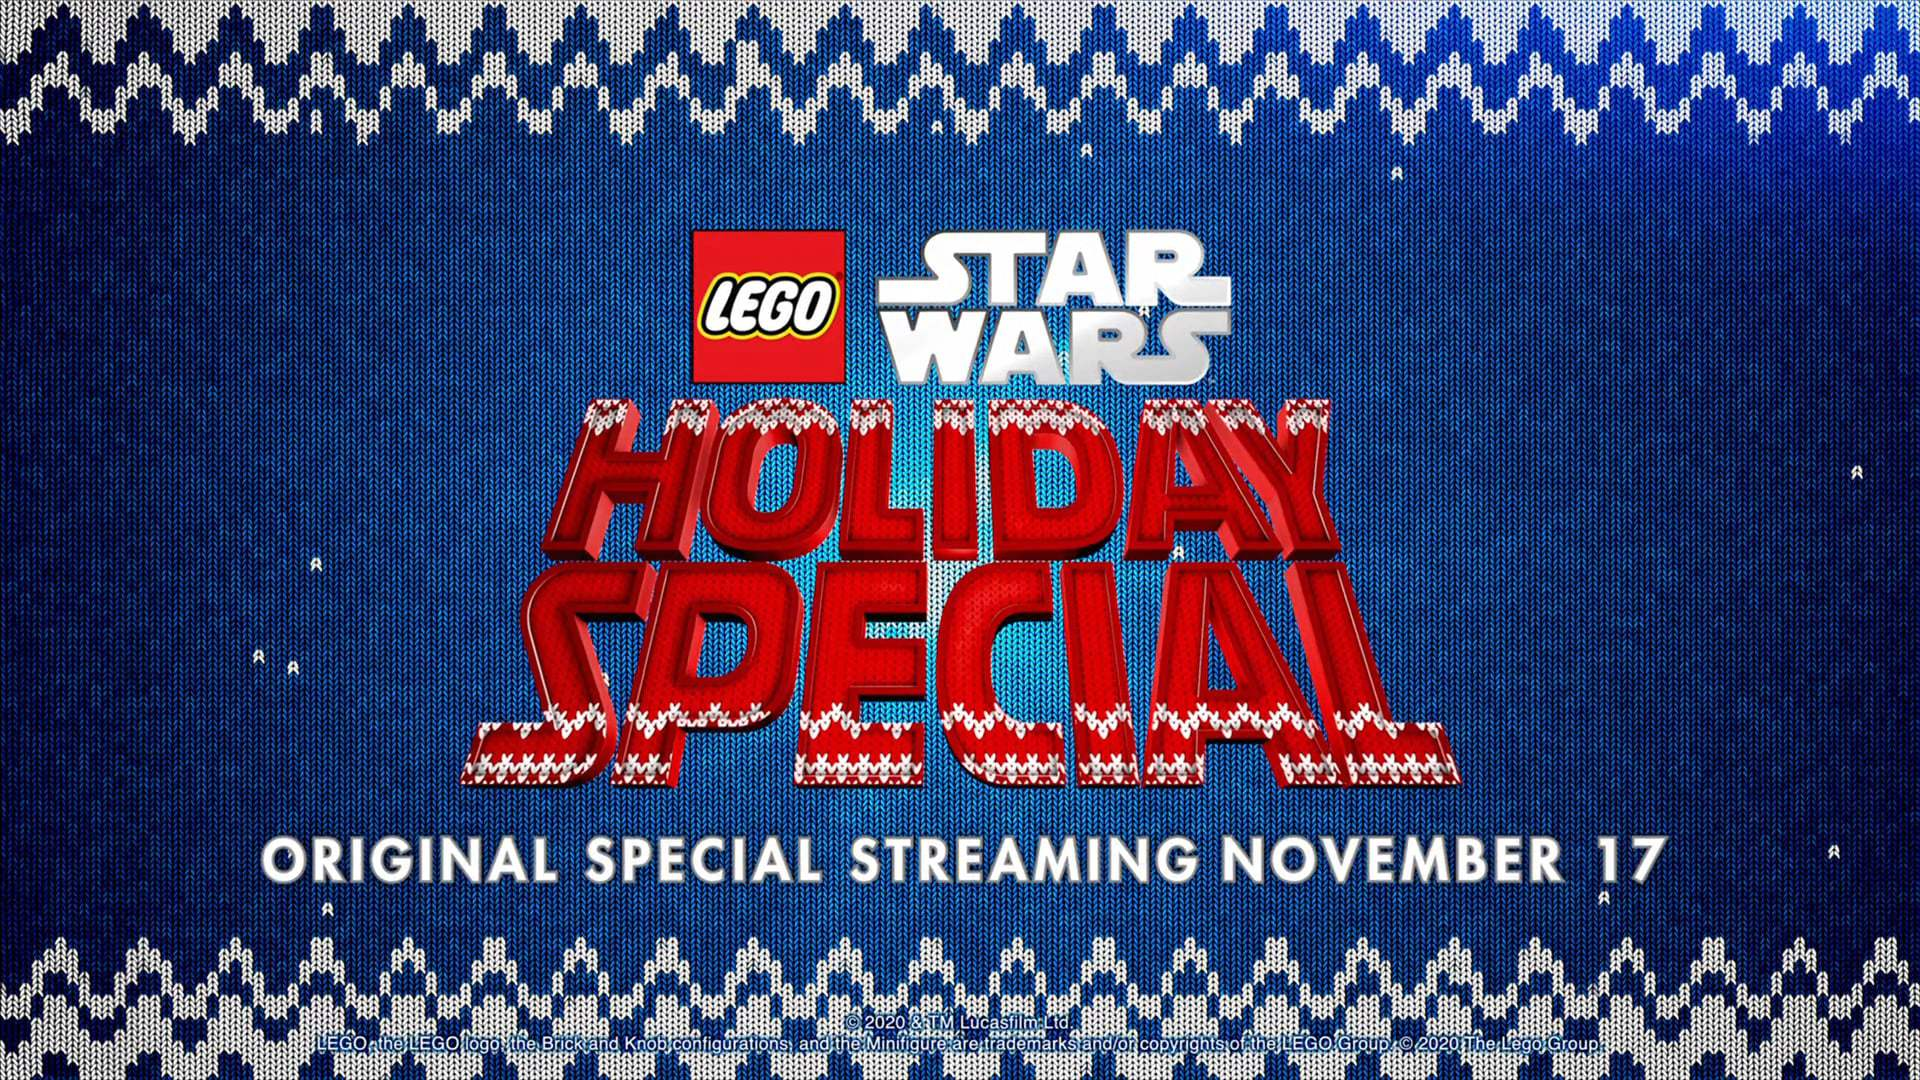 The Lego Star Wars Holiday Special Trailer (2020)